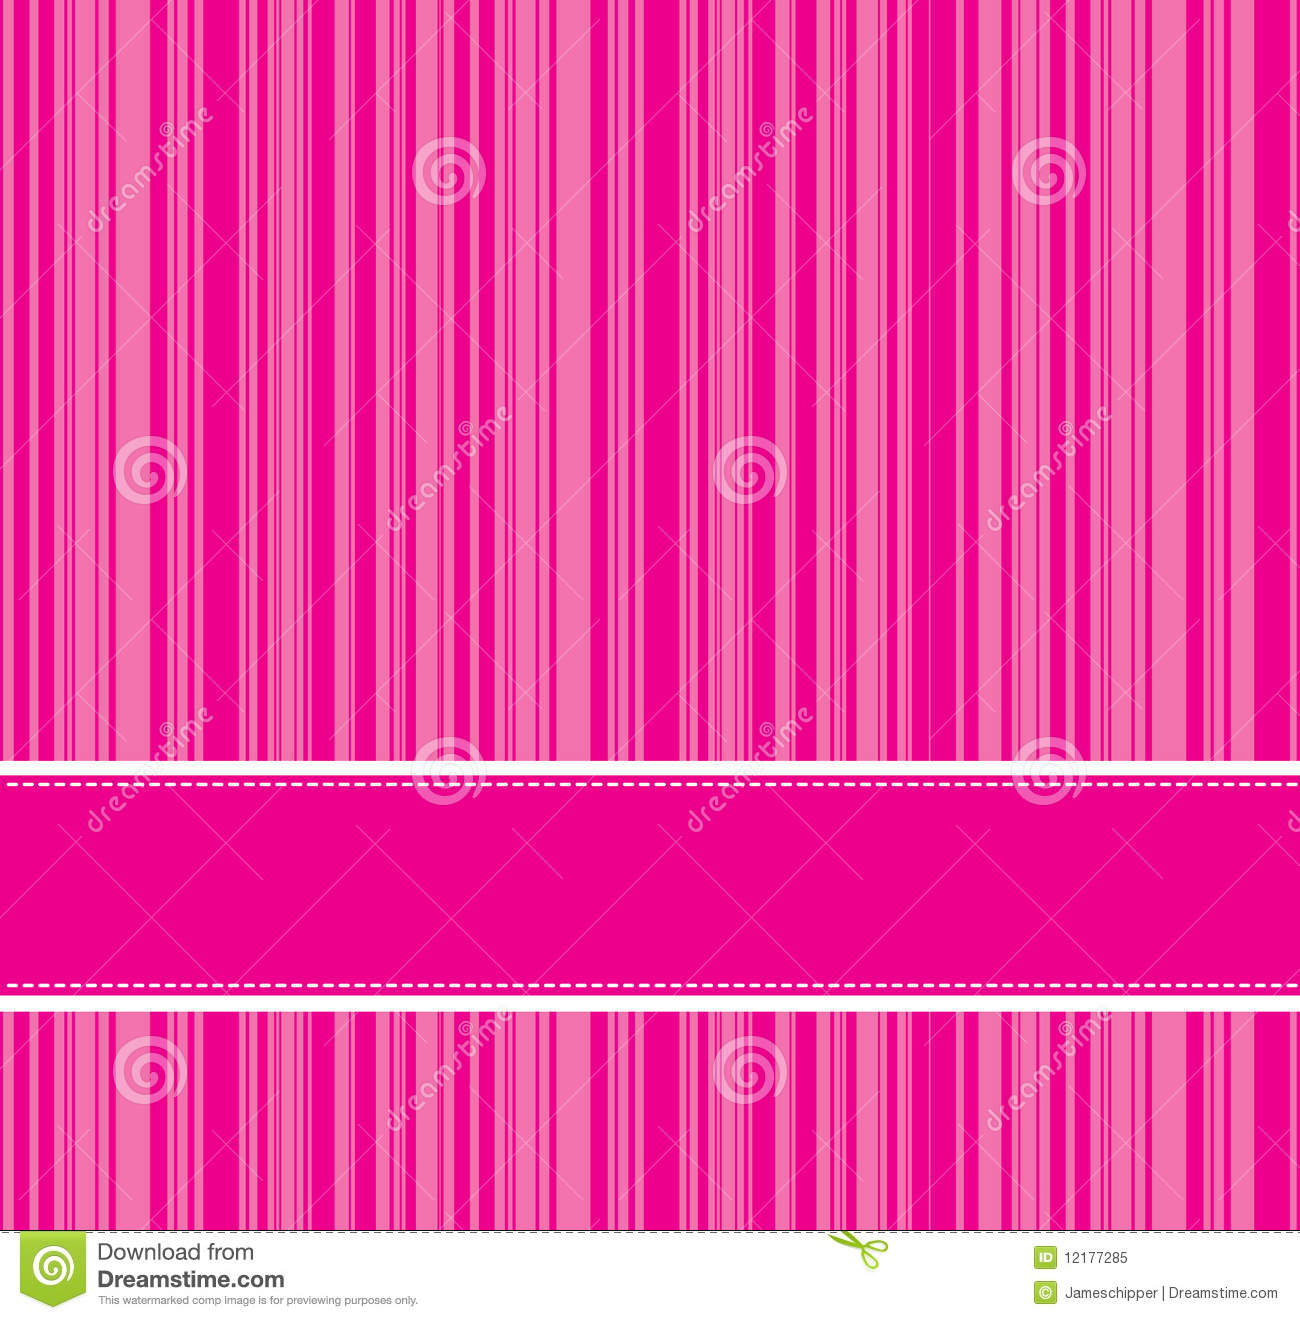 Pink Line Background Royalty Free Stock Photo - Image